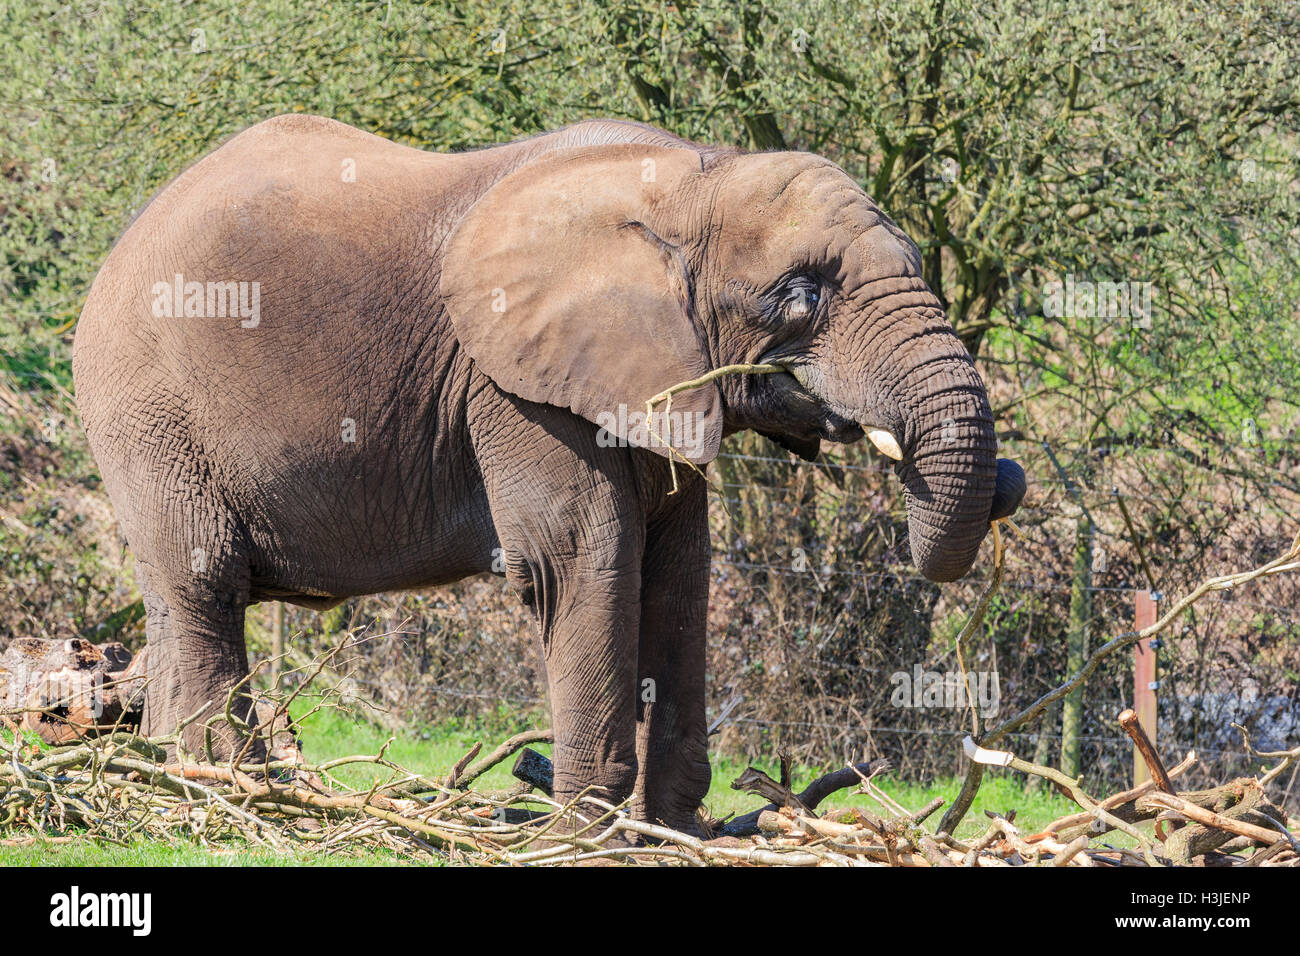 Spring Grove, APR 23: Elephant in the beautiful West Midland Safari Park on APR 23, 2016 at Spring Grove, United - Stock Image